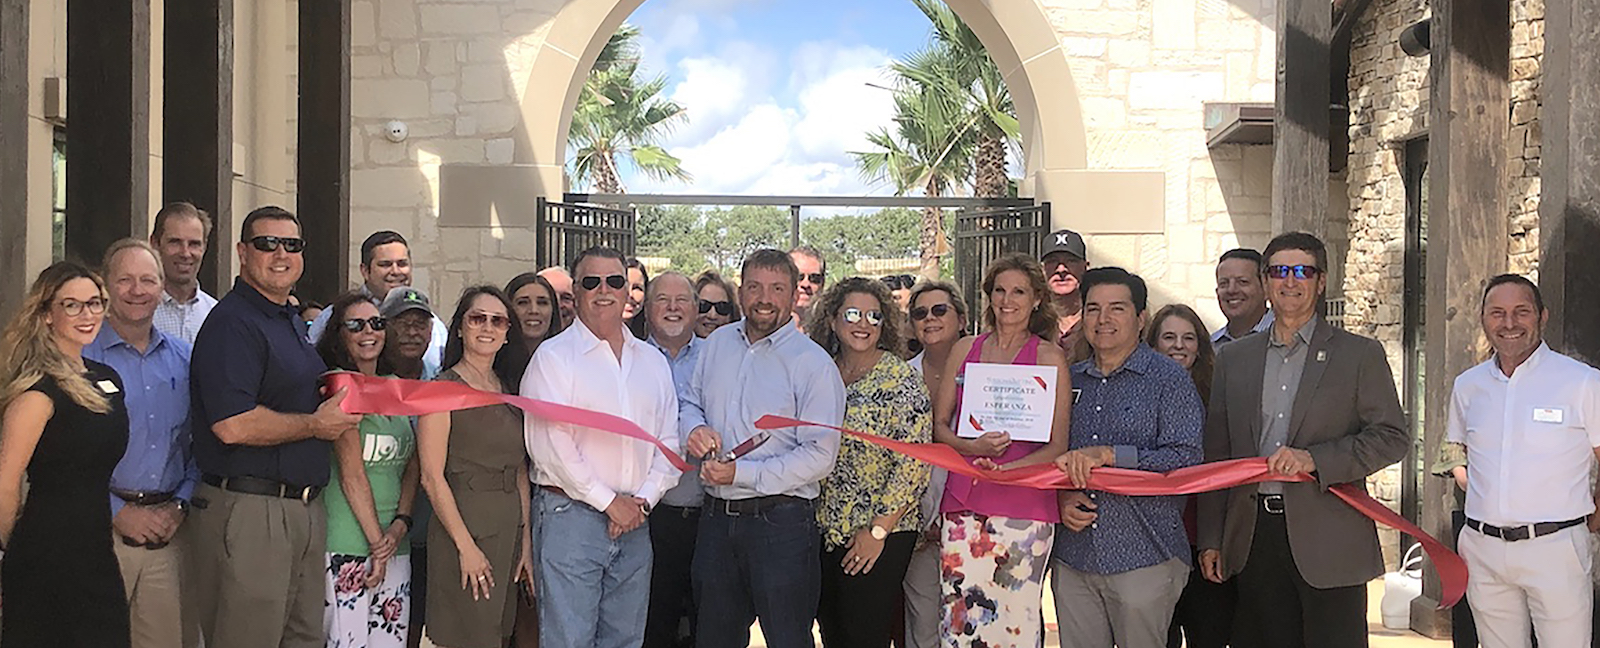 Esperanza Club Ribbon Cutting Image for Website